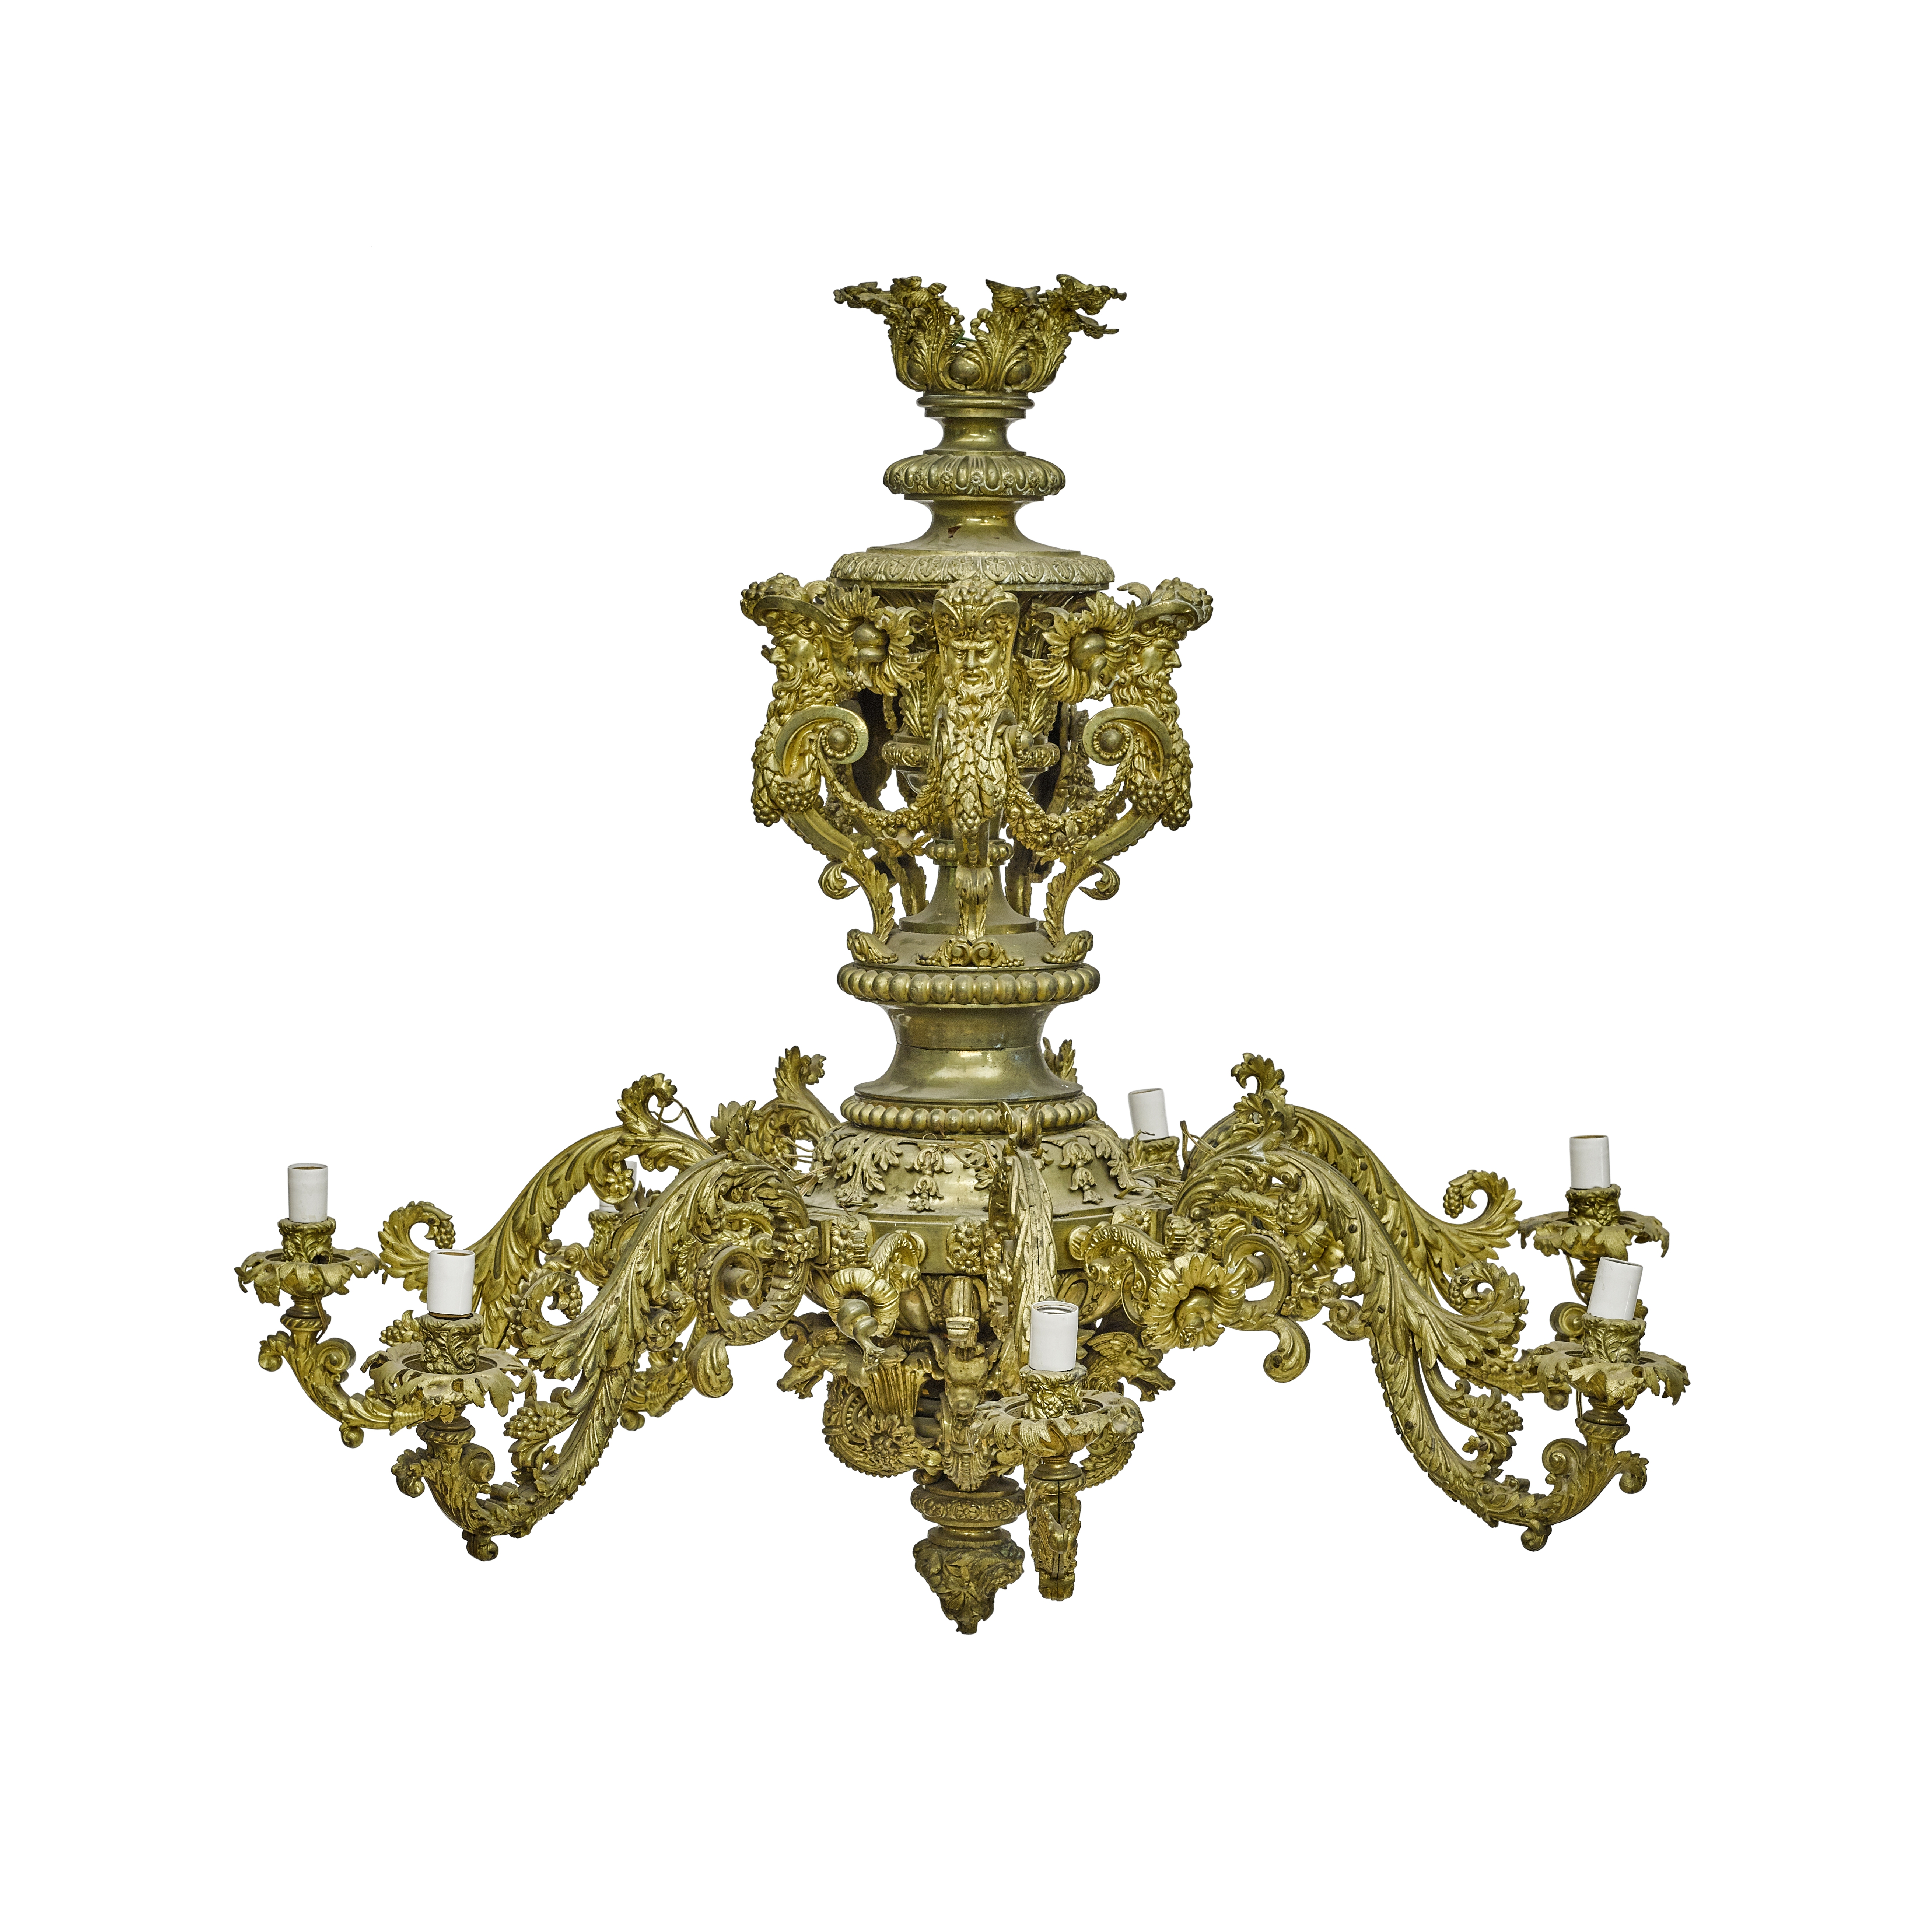 Lot 115 - A Louis XIV Style Gilt Bronze Seven Light Chandelier Late 19th/early 20th century